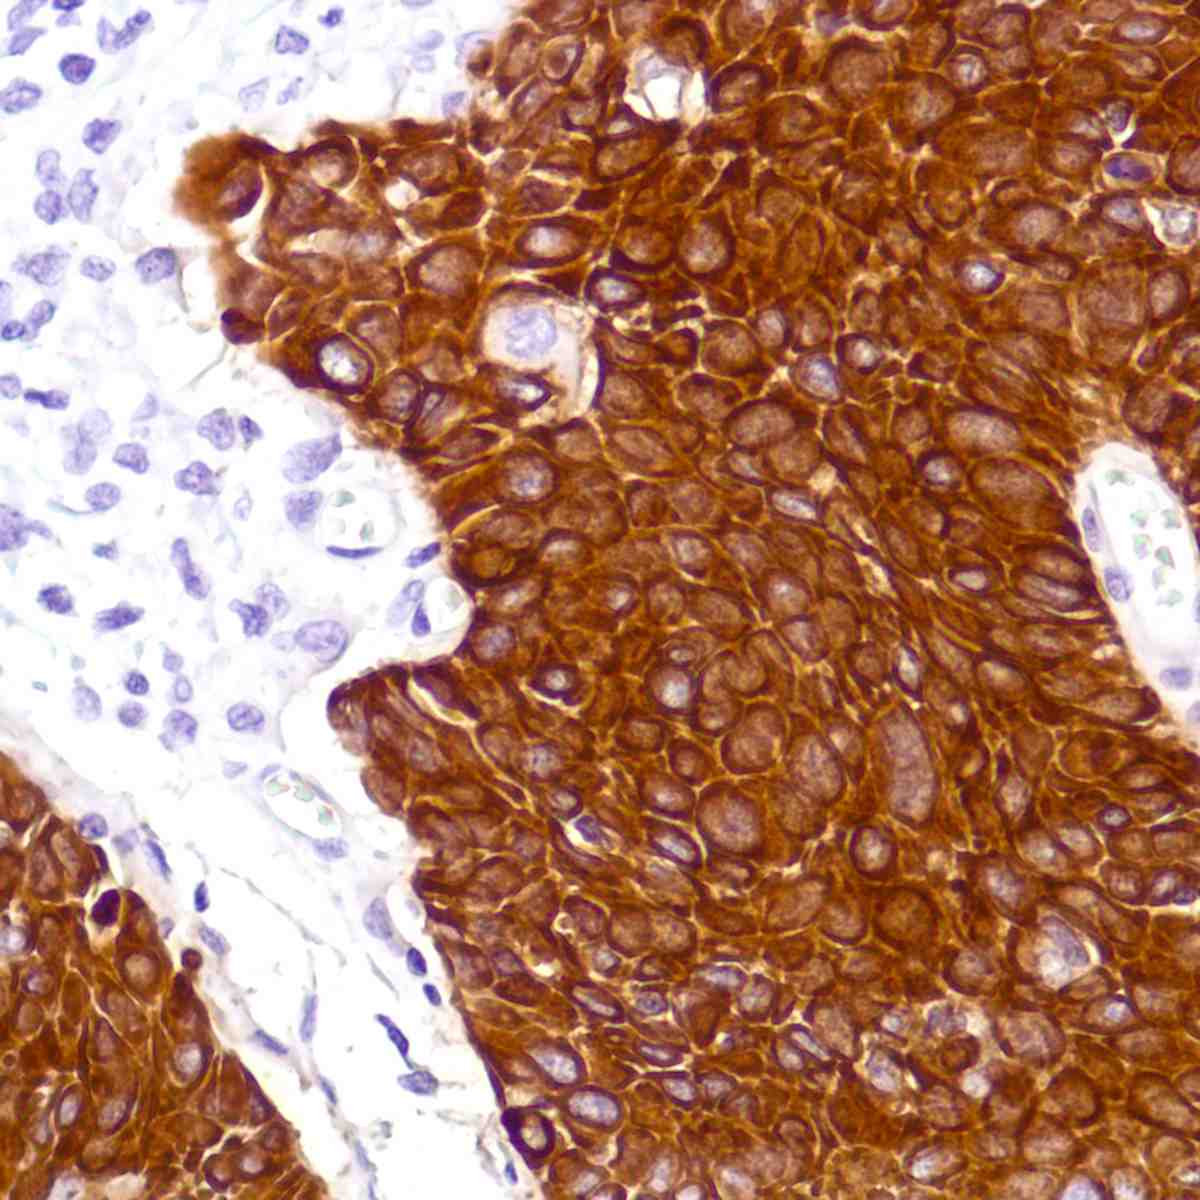 Human Cervix Squamous Cell Carcinoma stained with anti-Keratin5 antibody